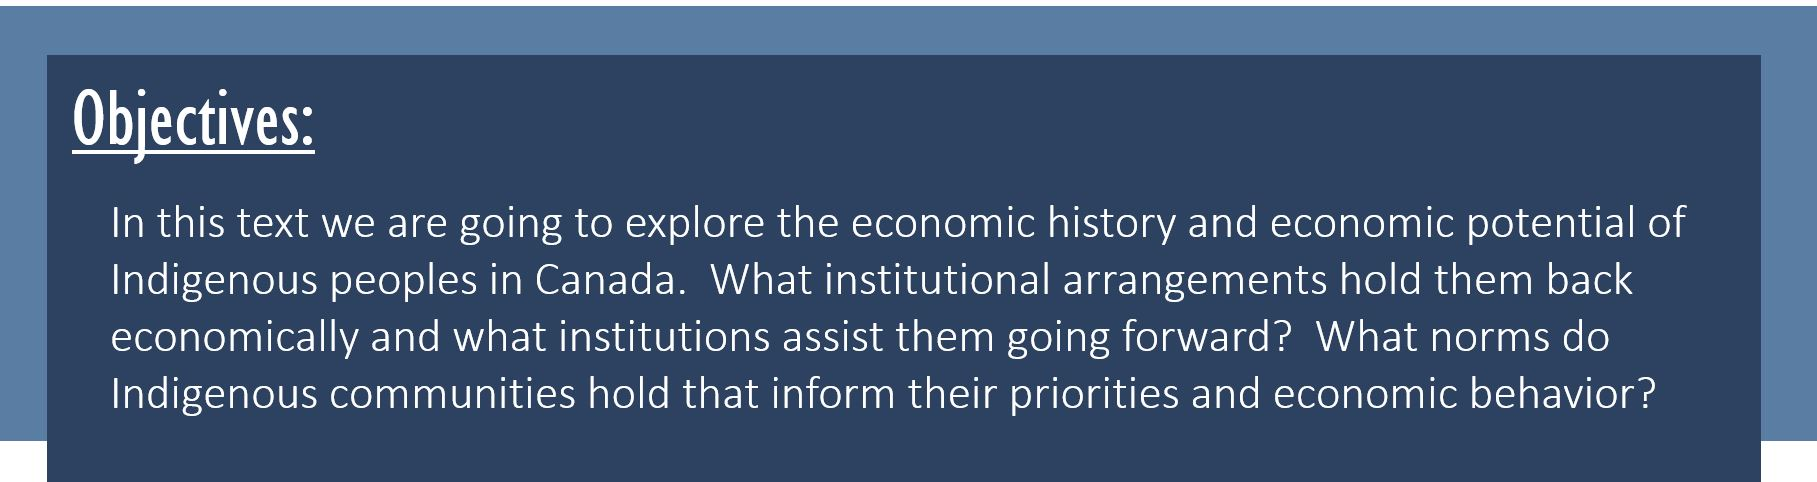 Objectives: In this text we are going to explore the economic history and economic potential of Indigenous communities in Canada. What institutional arrangements hold them back economically and what institutions assist them going forward? What norms do Indigenous communities hold that inform their priorities and economic behavior?